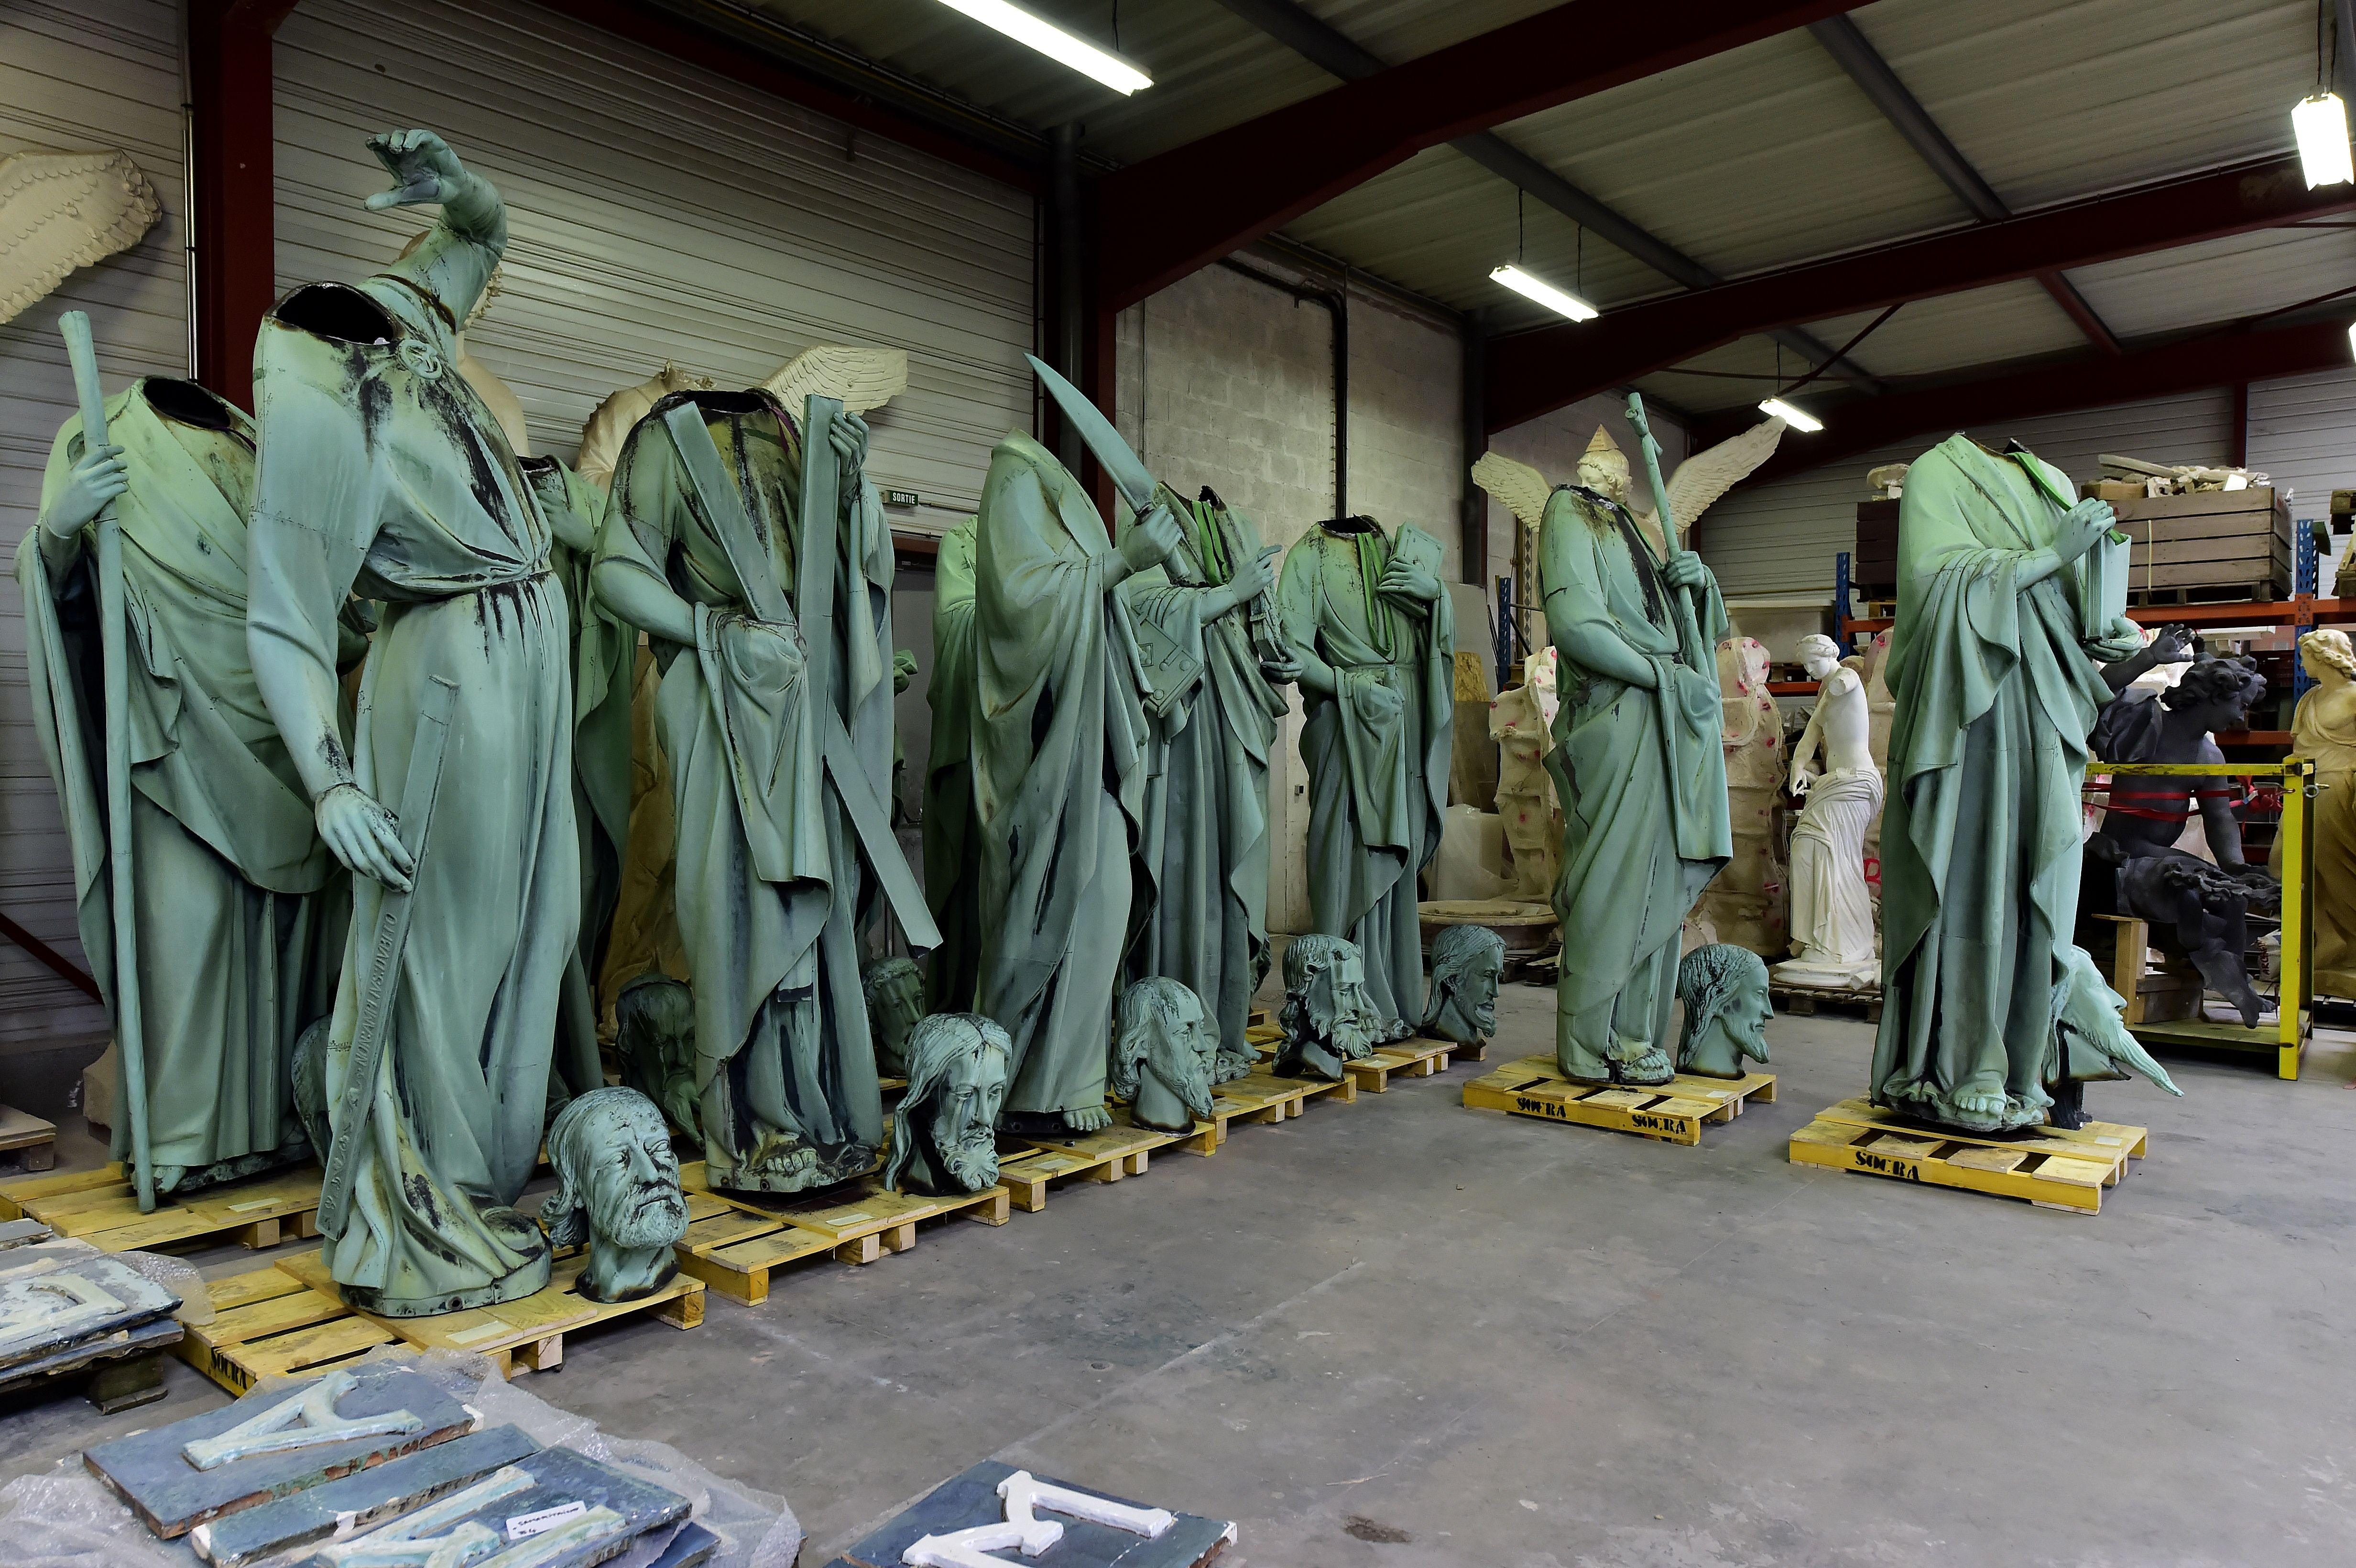 A picture taken in Marsac-sur-Isle near Bordeaux, on April 16, 2019 shows statues which sat around the spire of the Notre-Dame cathedral in Paris, stored in SOCRA workshop before restoration. (Photo: GEORGES GOBET/AFP/Getty Images)